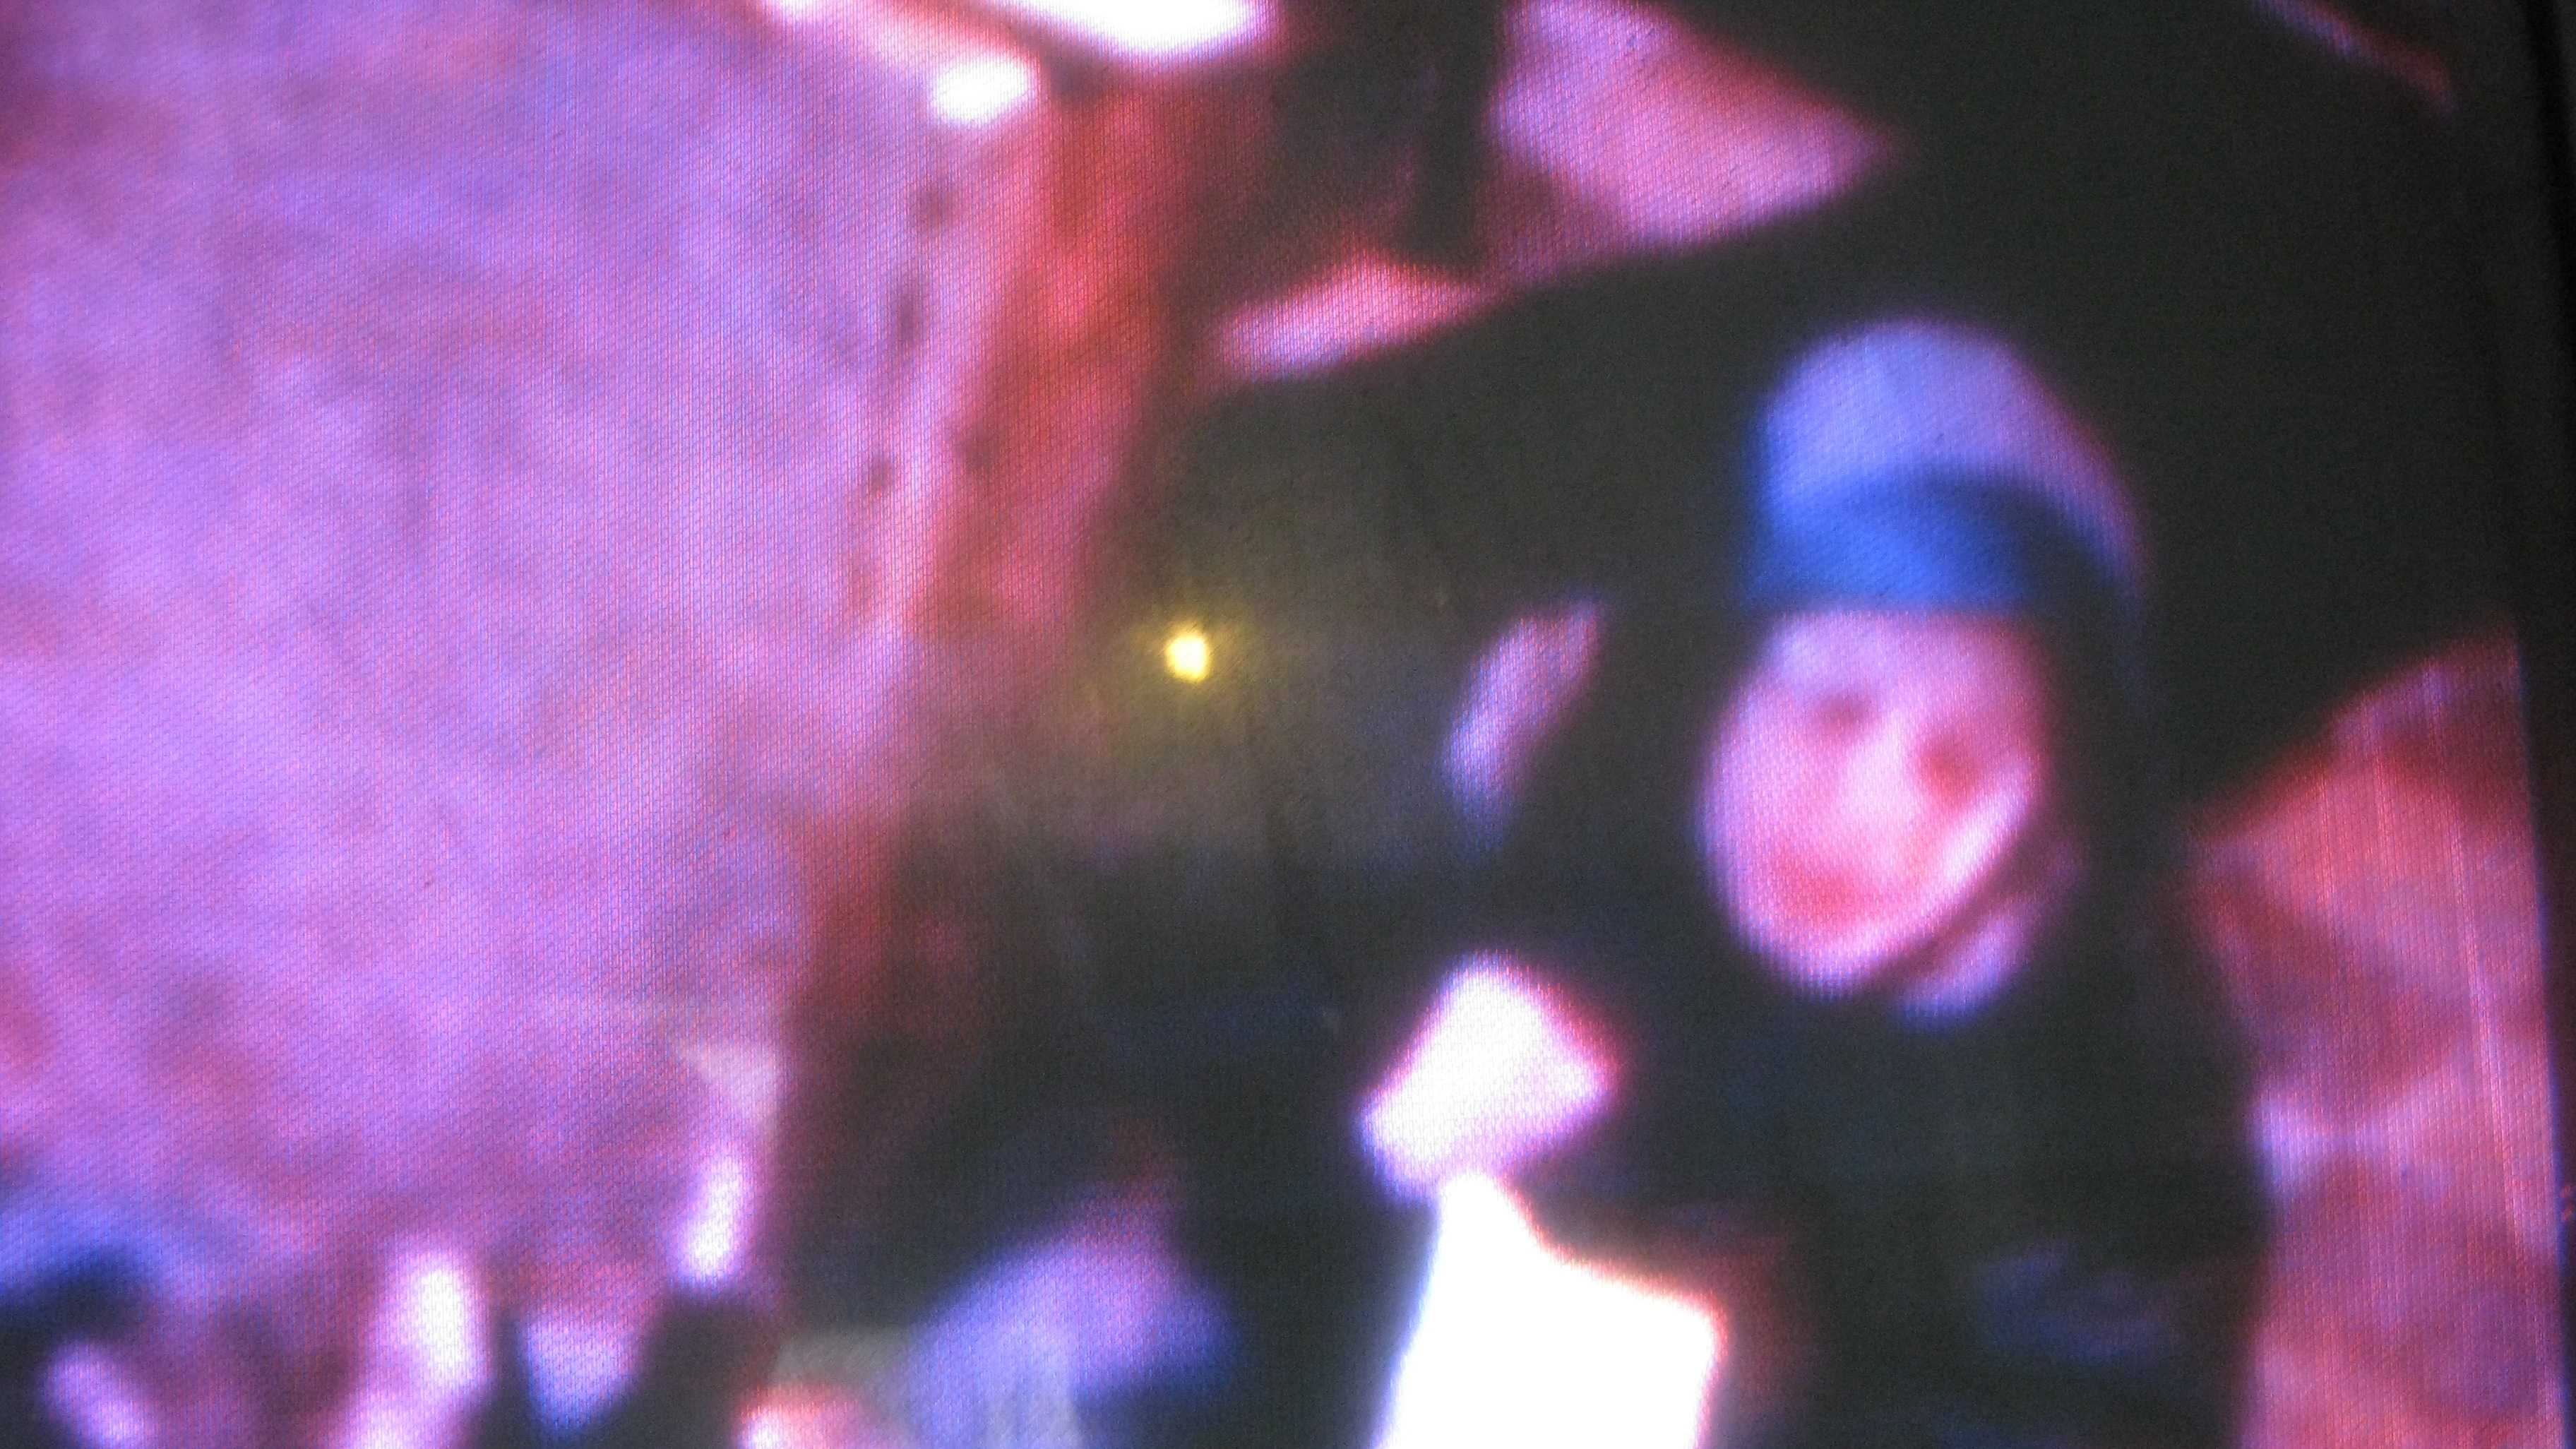 This woman is suspected of robbing Ali Baba's Kabob Shop in Burlington Thursday evening by knife-point.